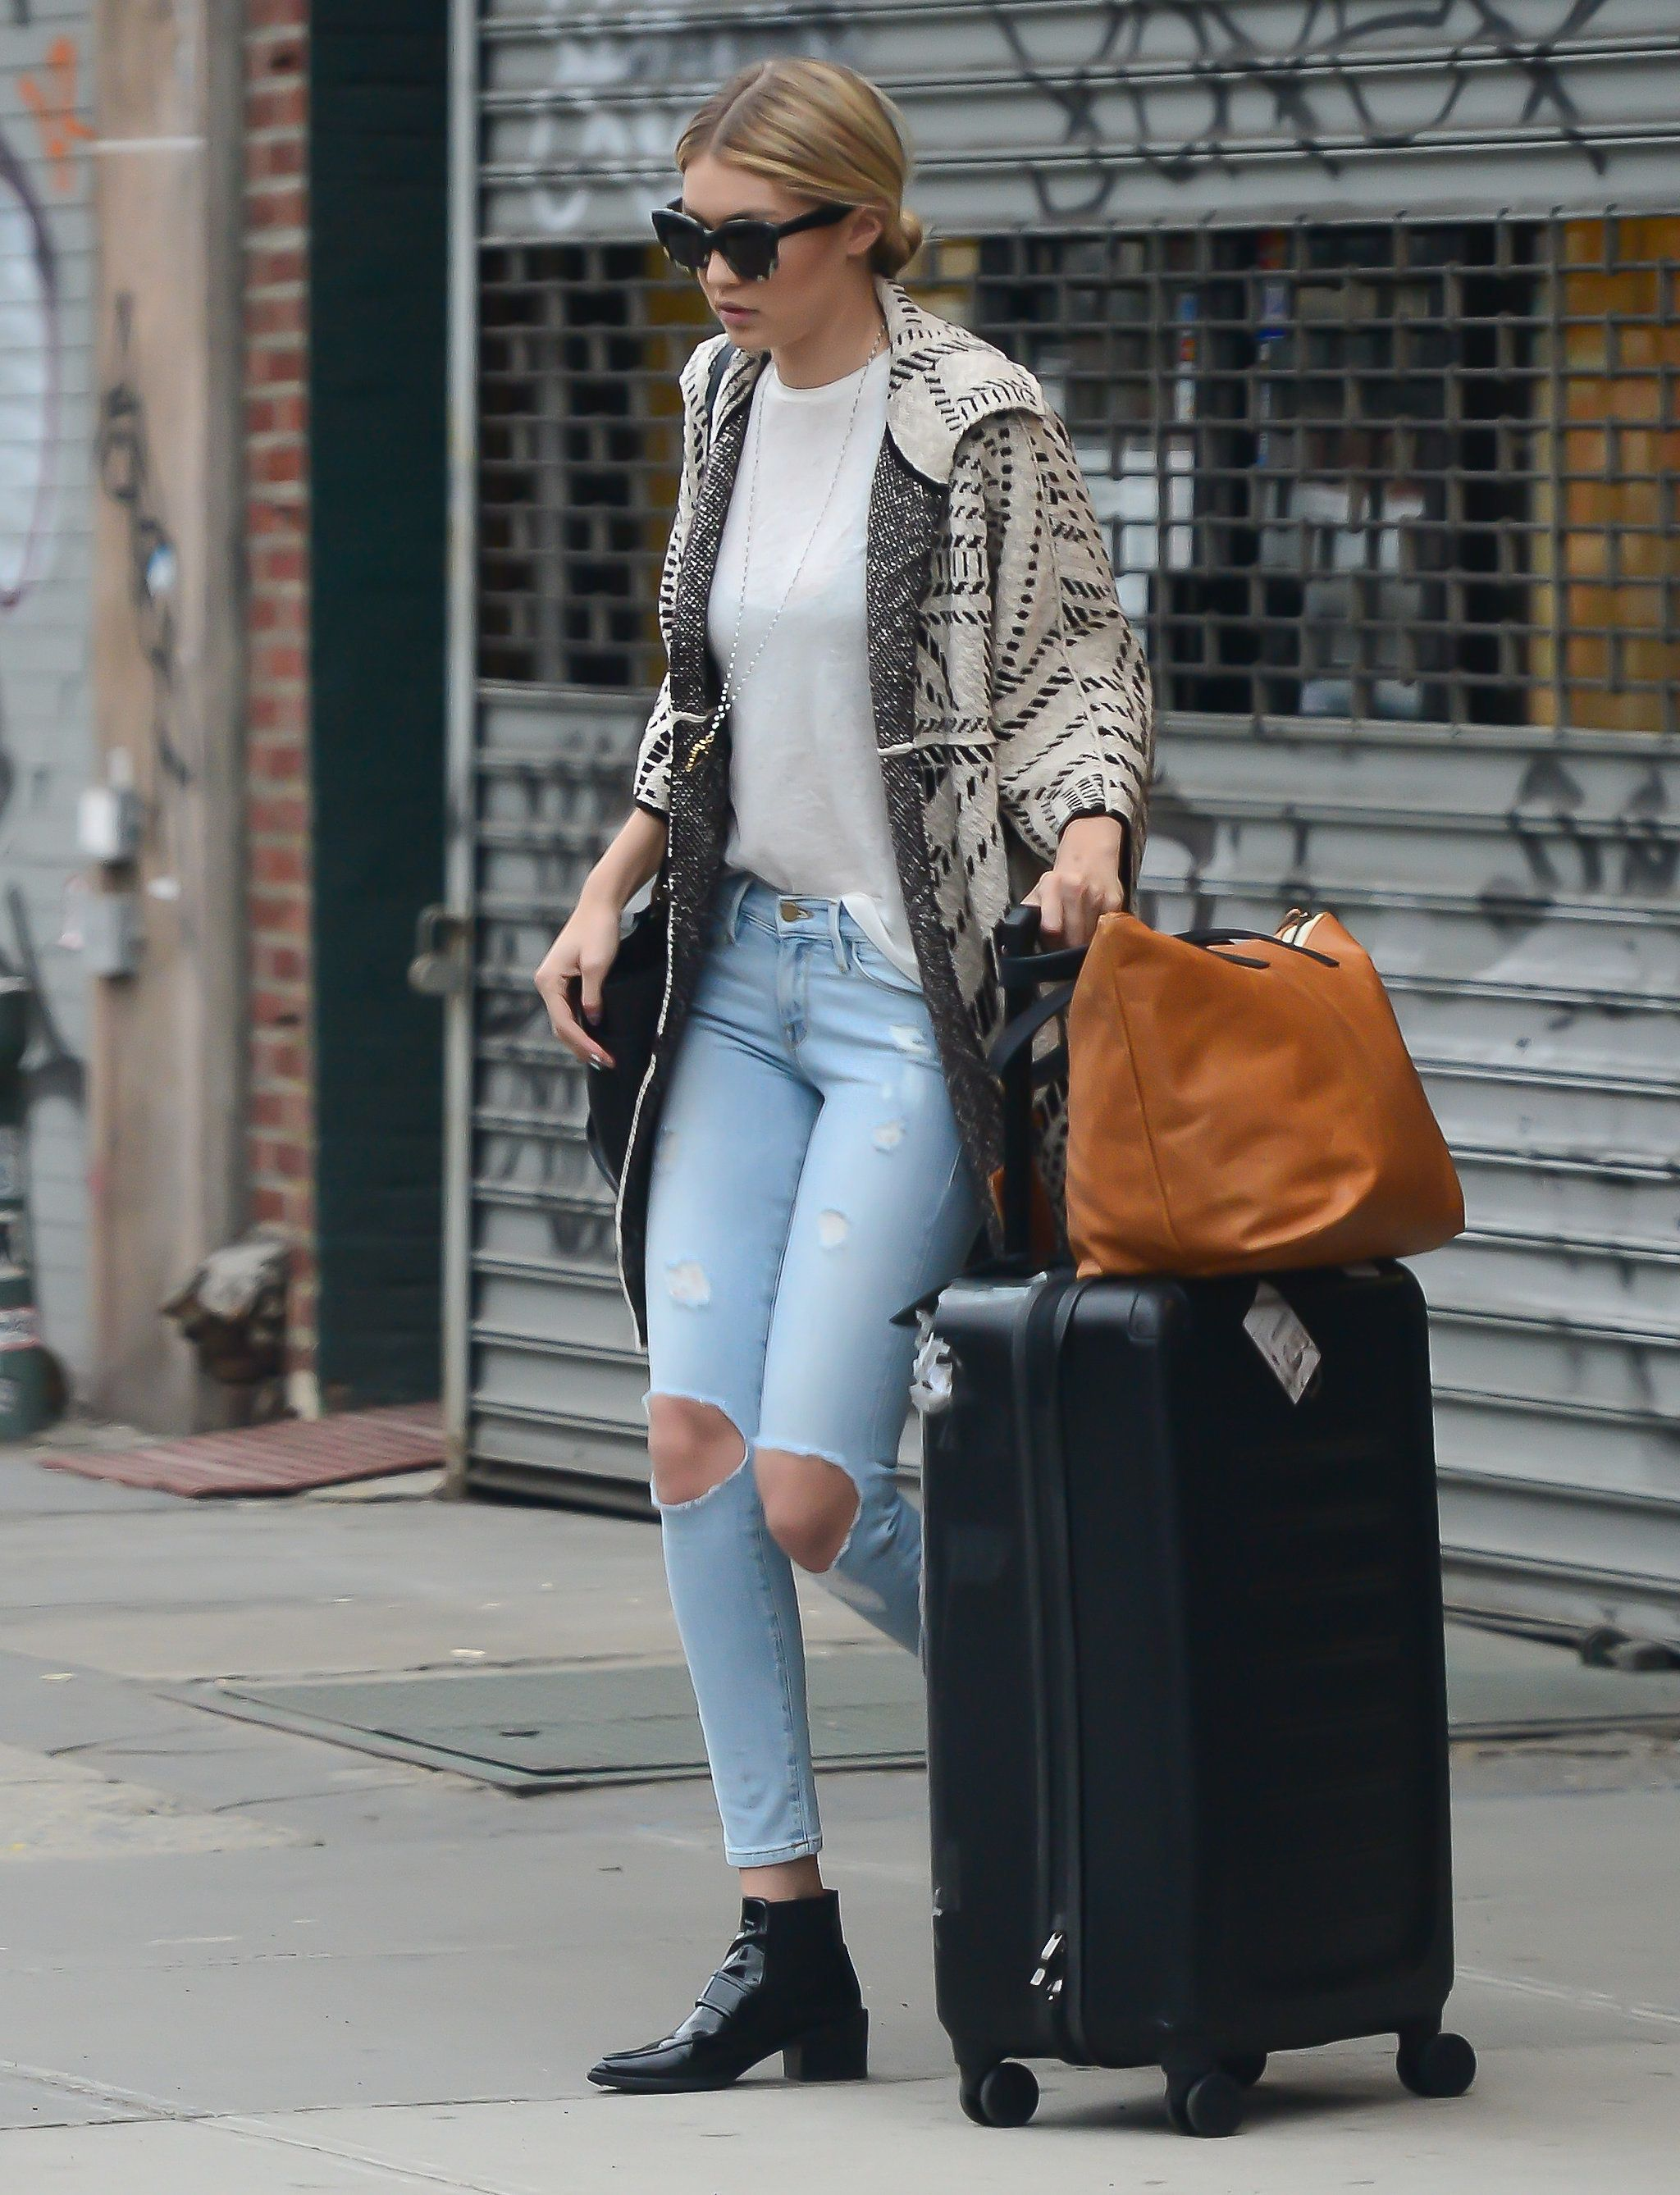 69a3eca1e21 The model had the perfect travel look when she headed out in a sweater coat  and distressed jeans